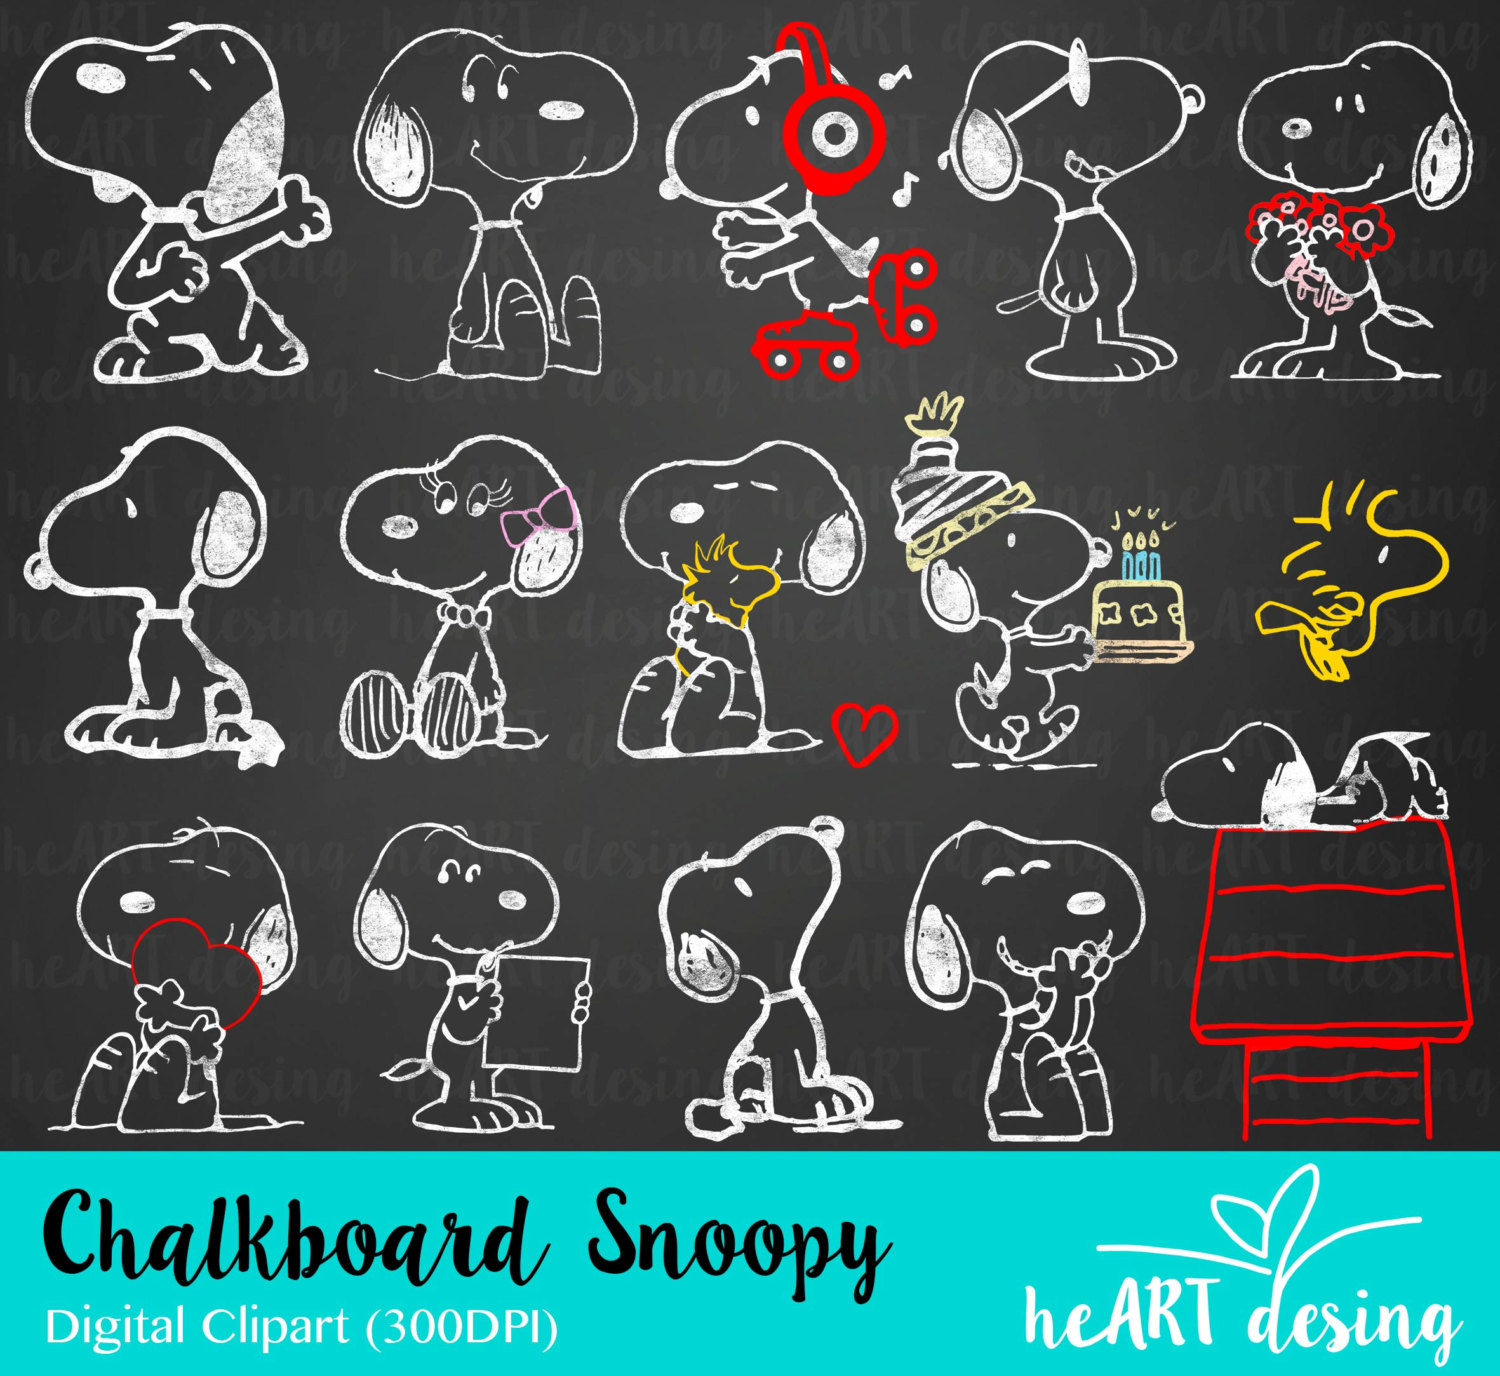 Snoopy clipart heart / Commercial Clipart item? for